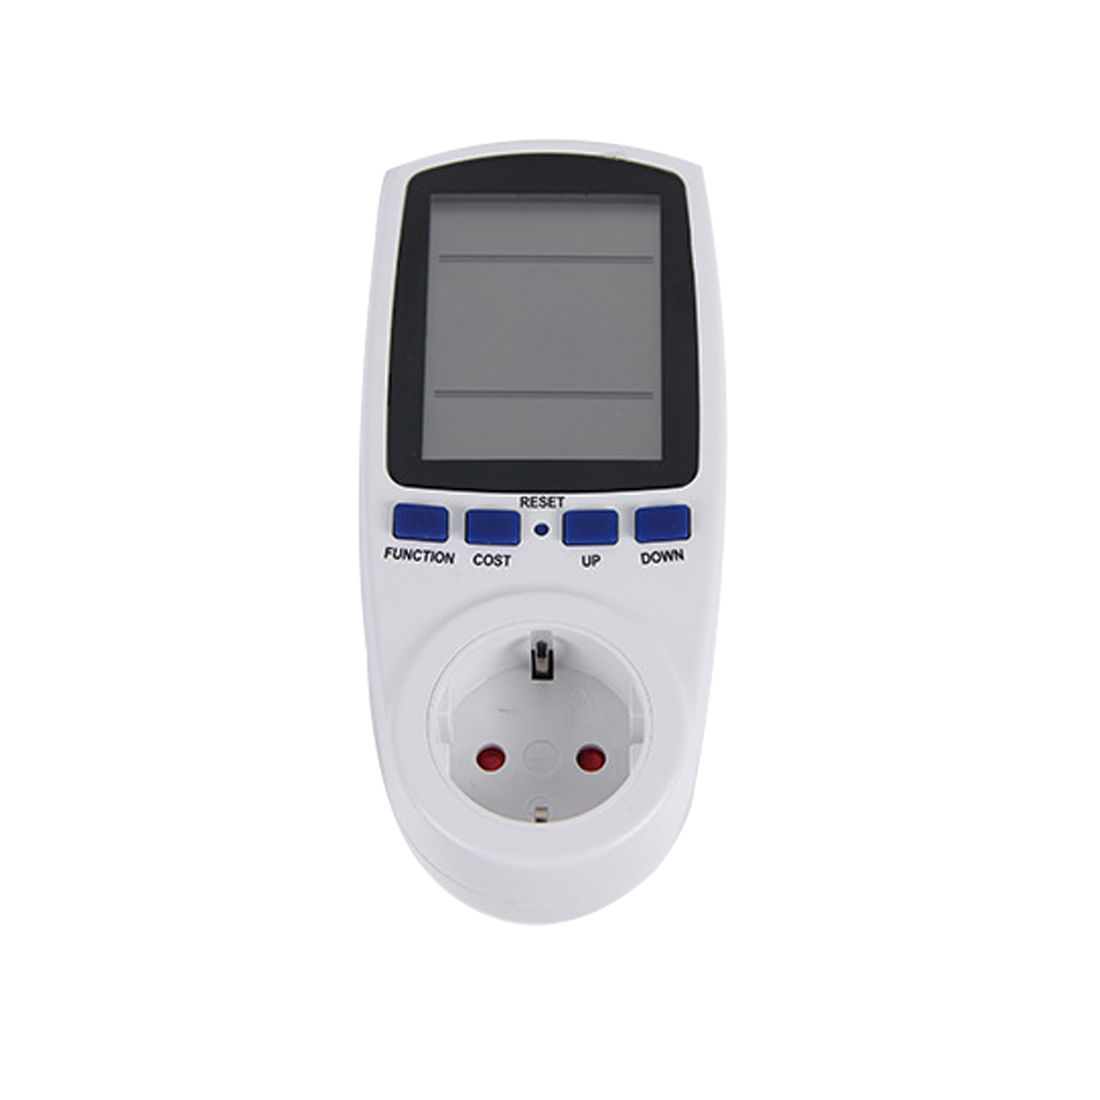 AC Power Meter 220V Digital Wattmeter EU Energy Meter Watt Monitor Electricity Consumption Measuring Socket Analyzer digital power meter energy meter volt voltage wattmeter power analyzer electronic power energy meter measuring outlet socket eu